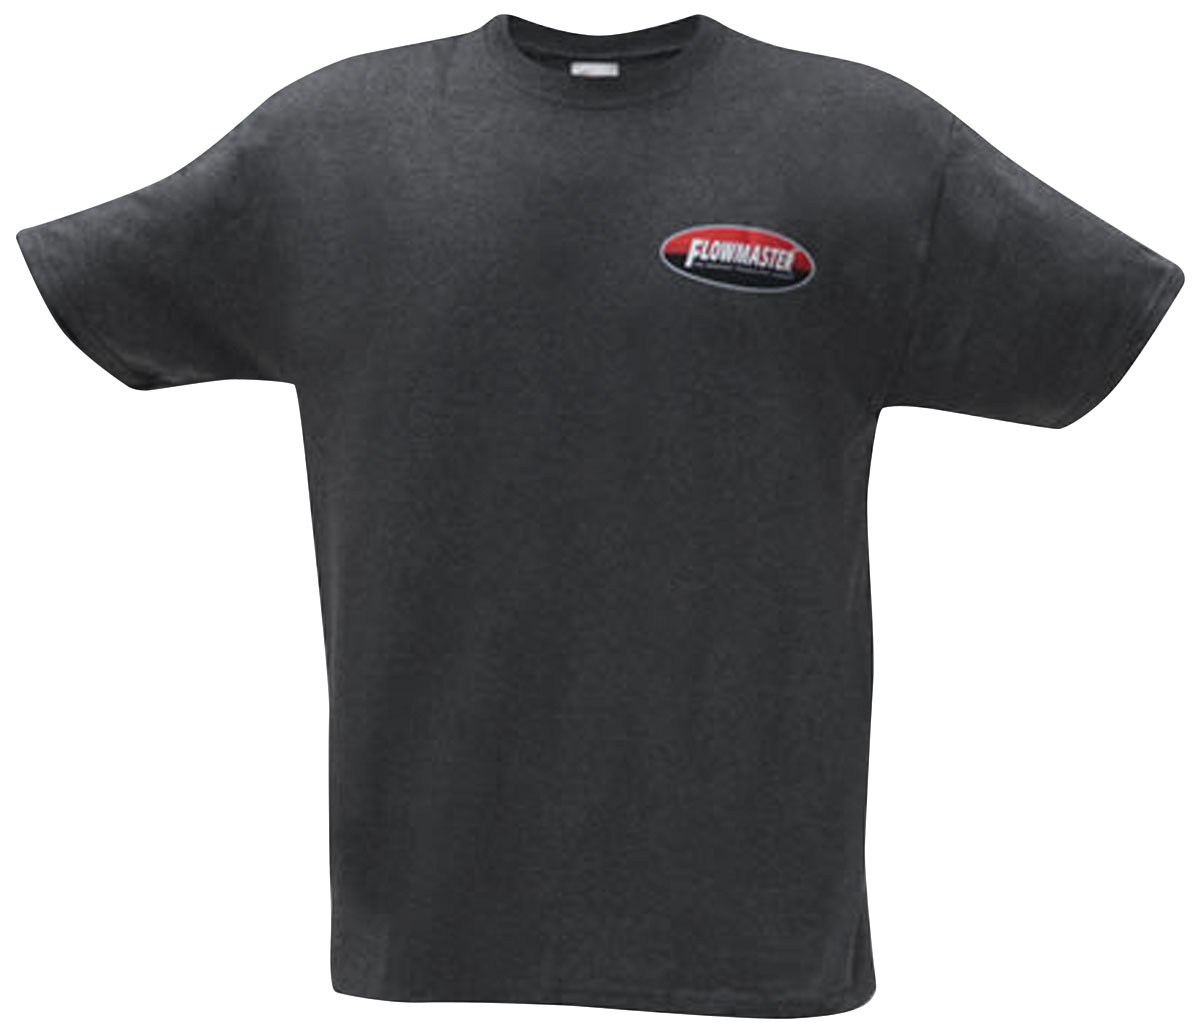 Photo of Flowmaster Oval Tee charcoal